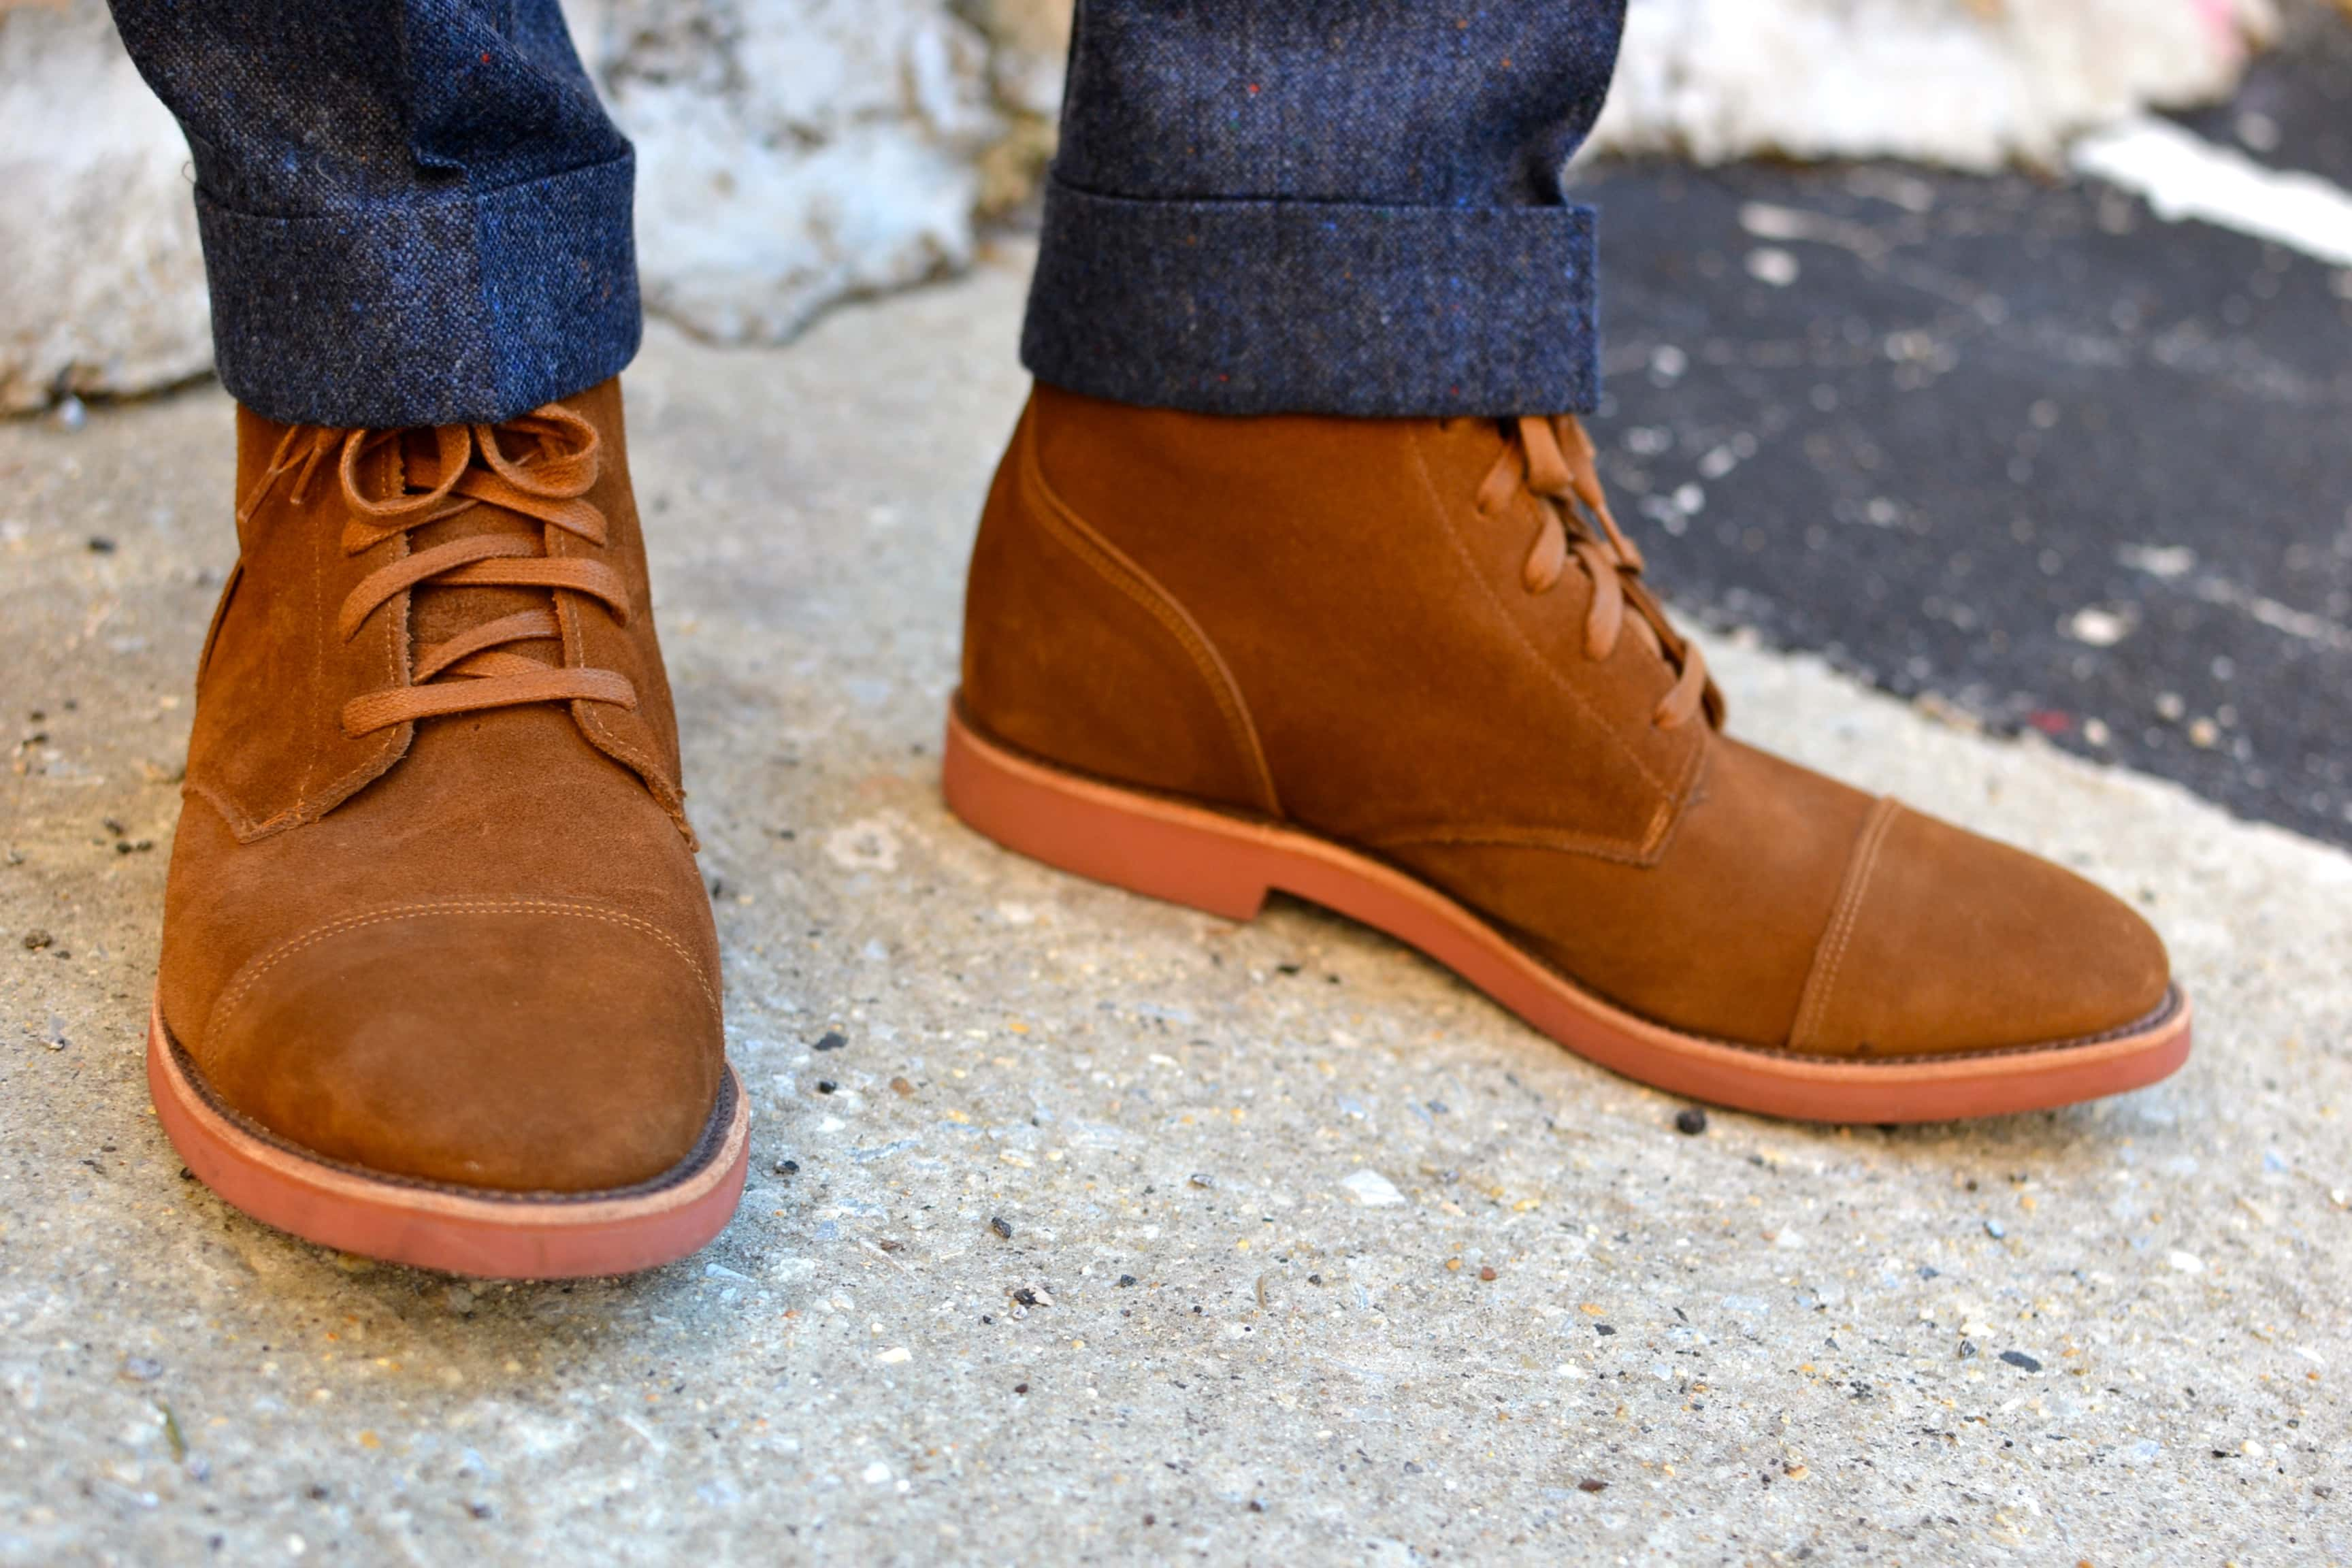 Humboldt Suede Boots by Walk Over Shoe Co